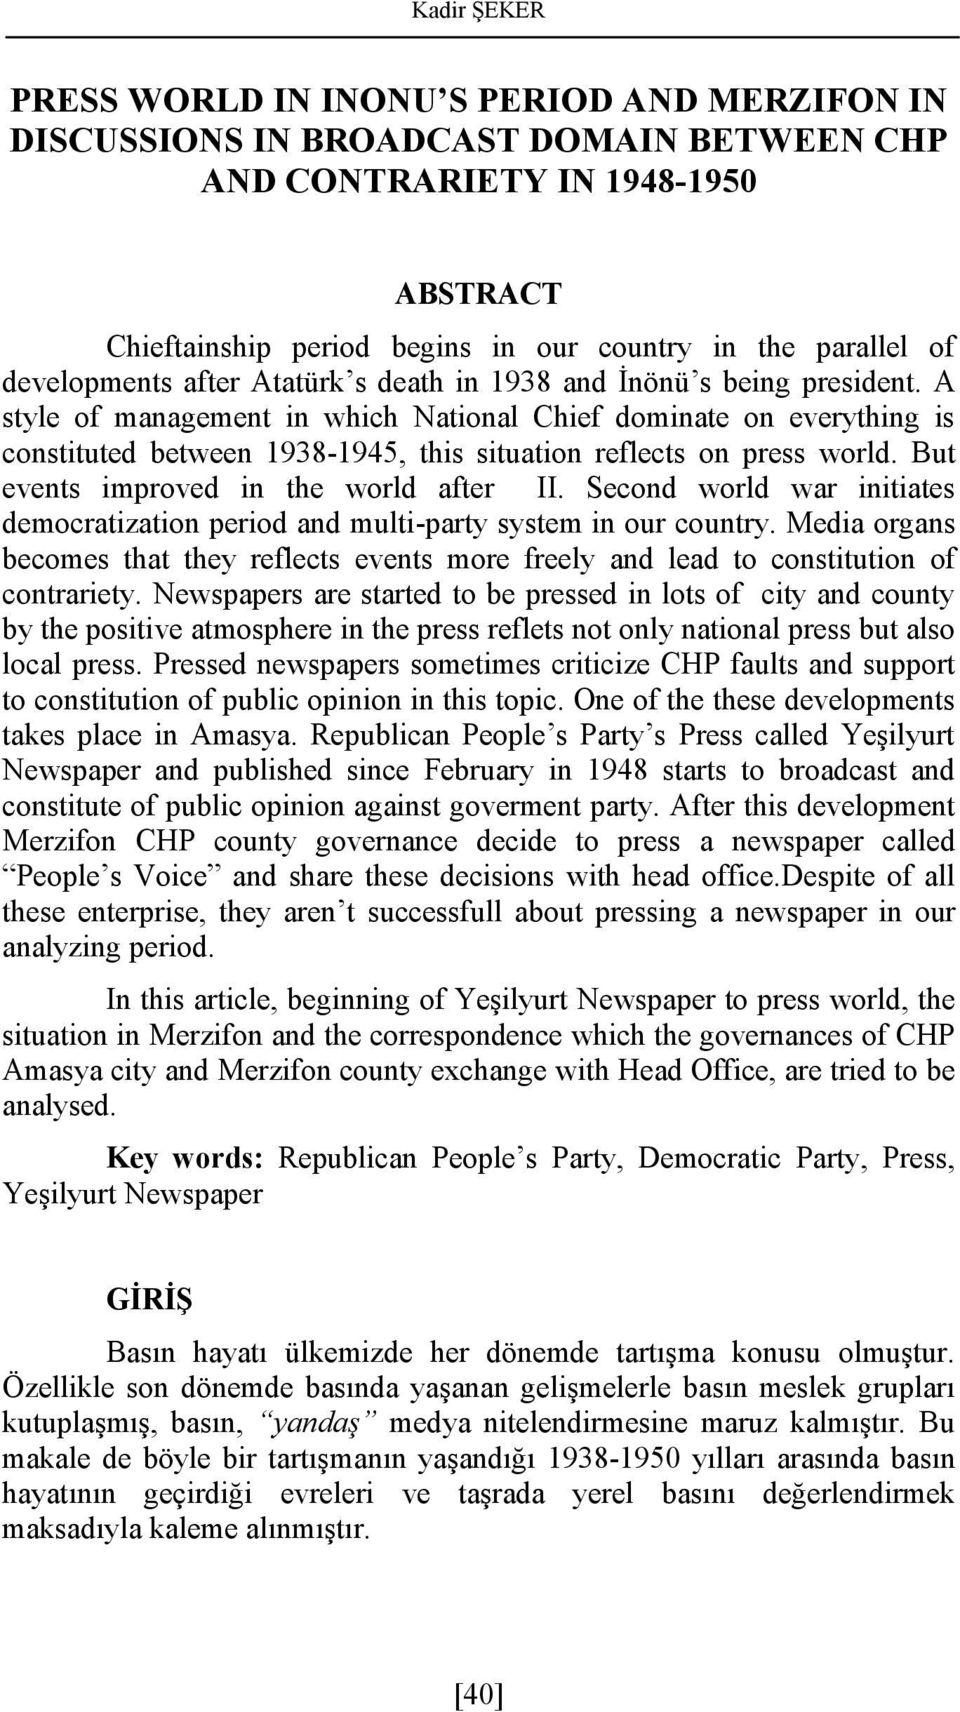 A style of management in which National Chief dominate on everything is constituted between 1938-1945, this situation reflects on press world. But events improved in the world after II.